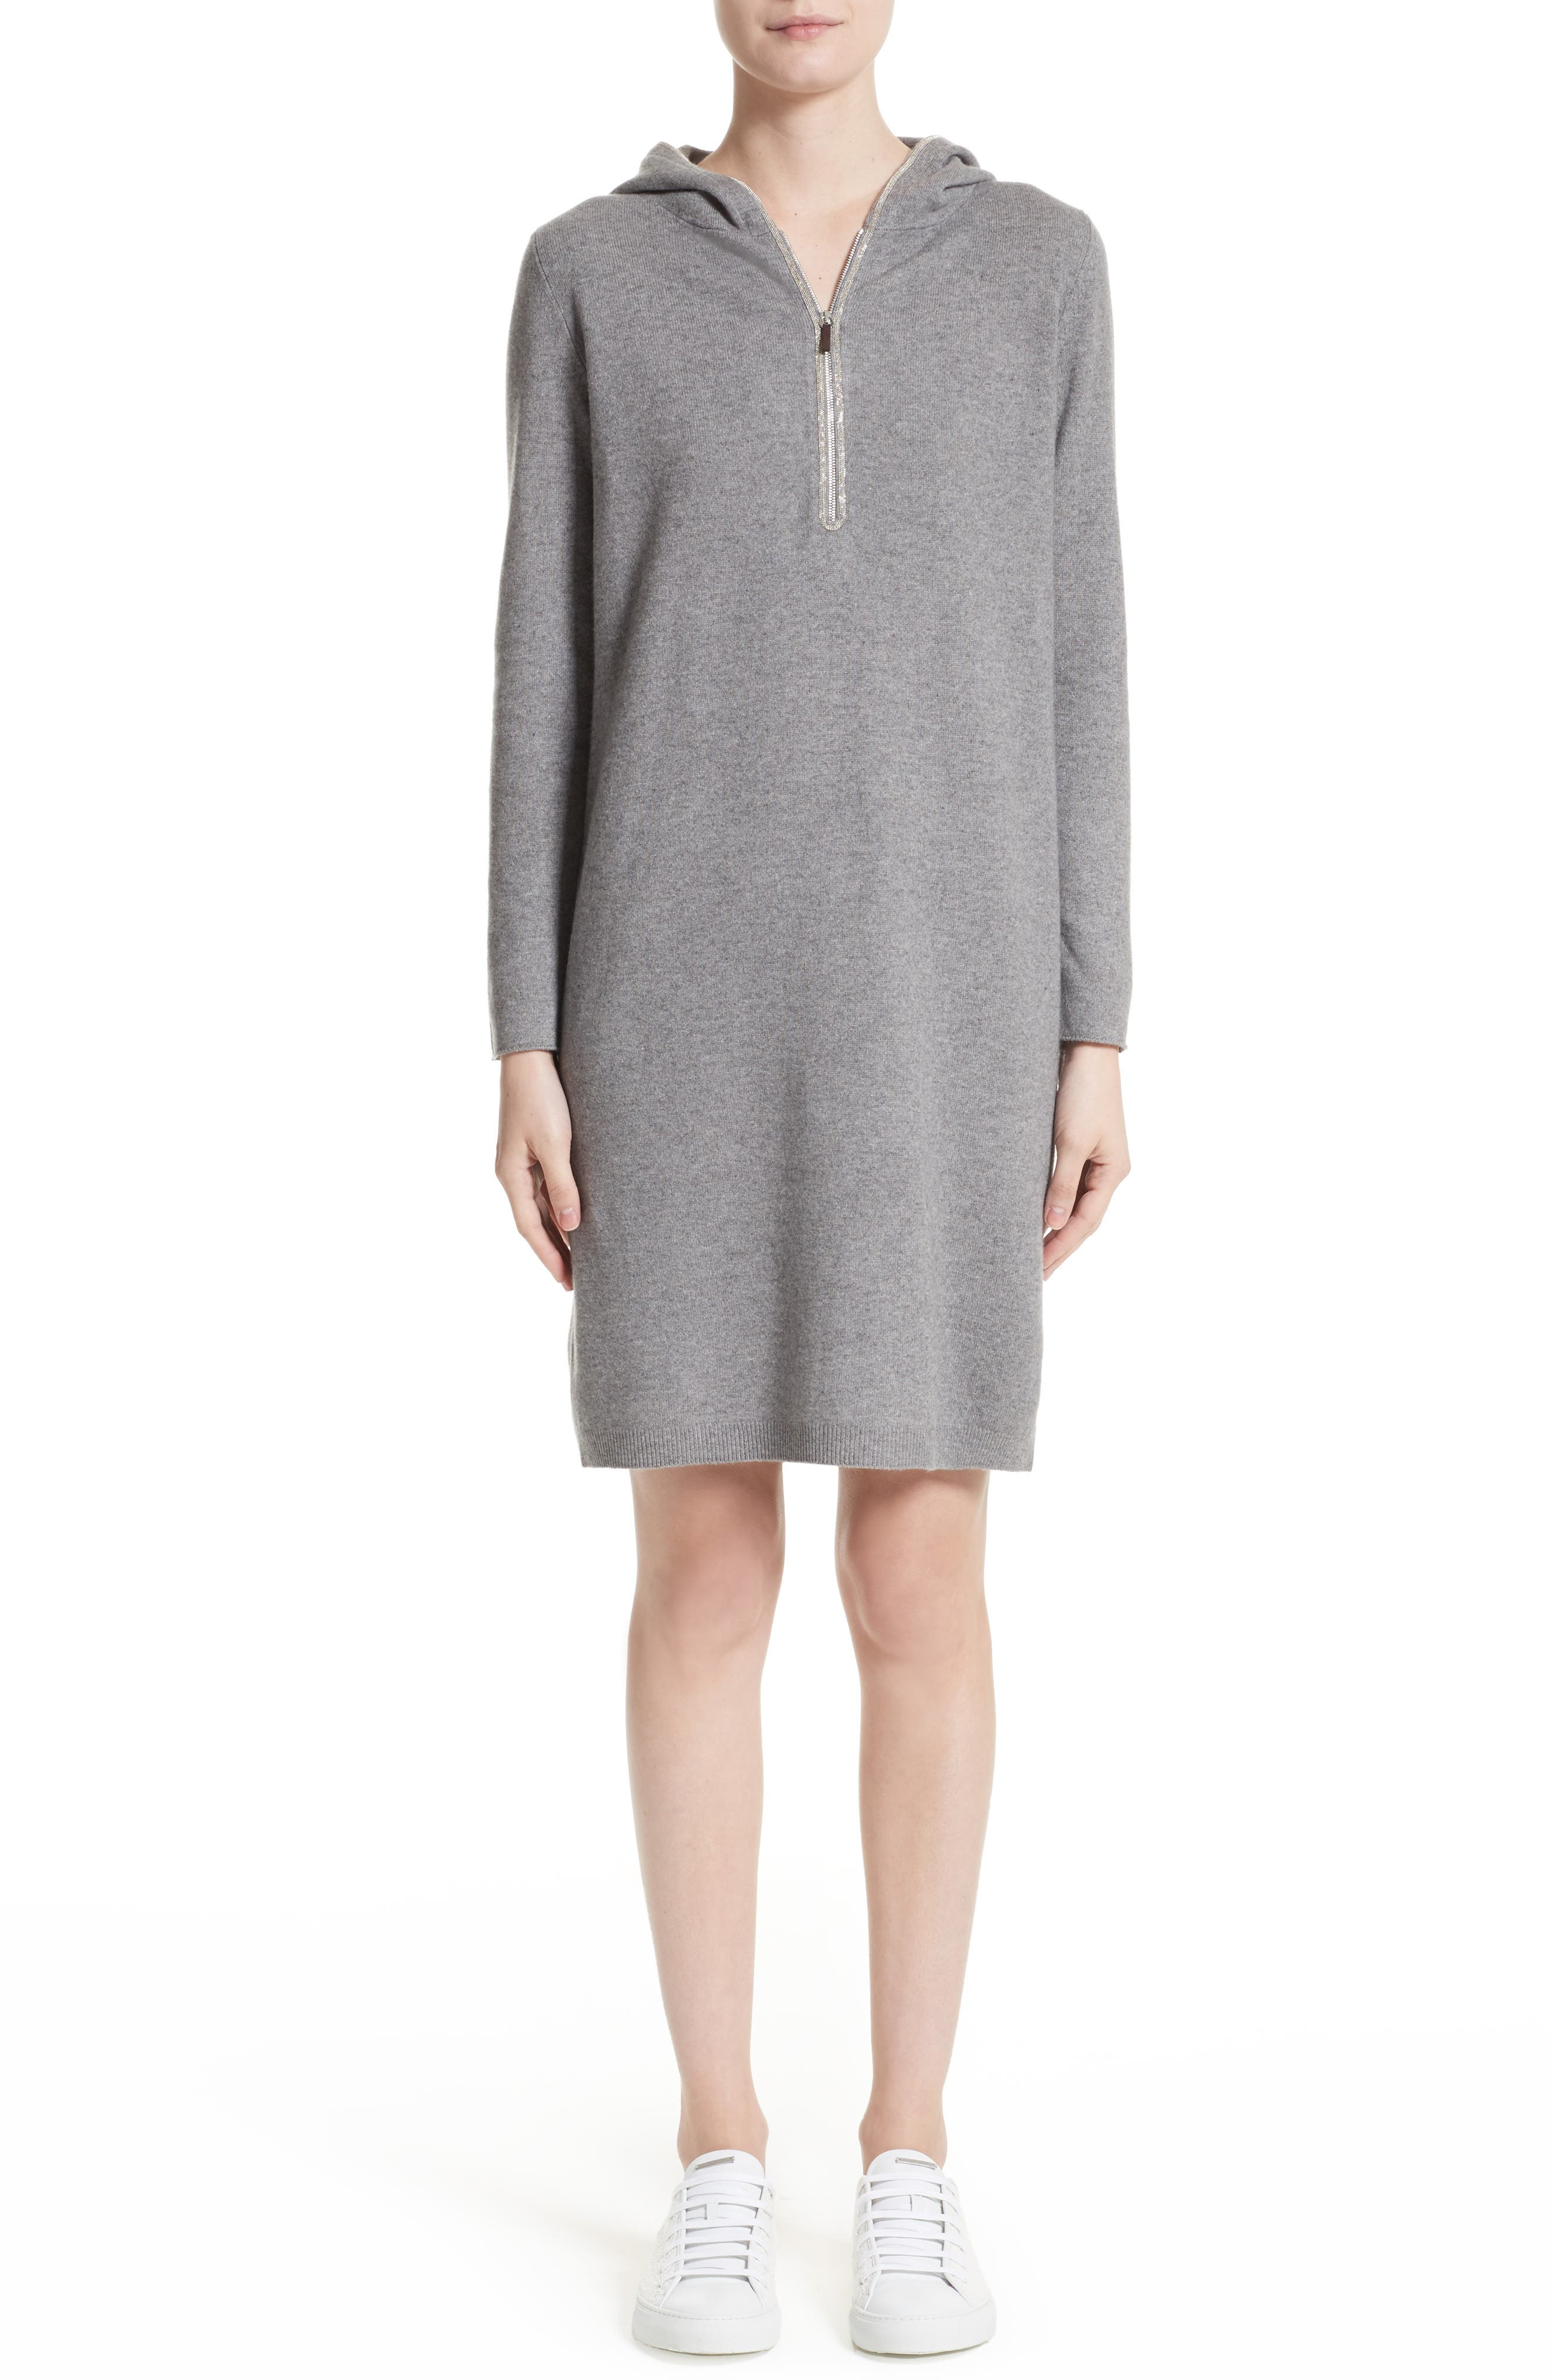 Alternate Image 1 Selected - Fabiana Filippi Wool, Silk & Cashmere Hooded Dress